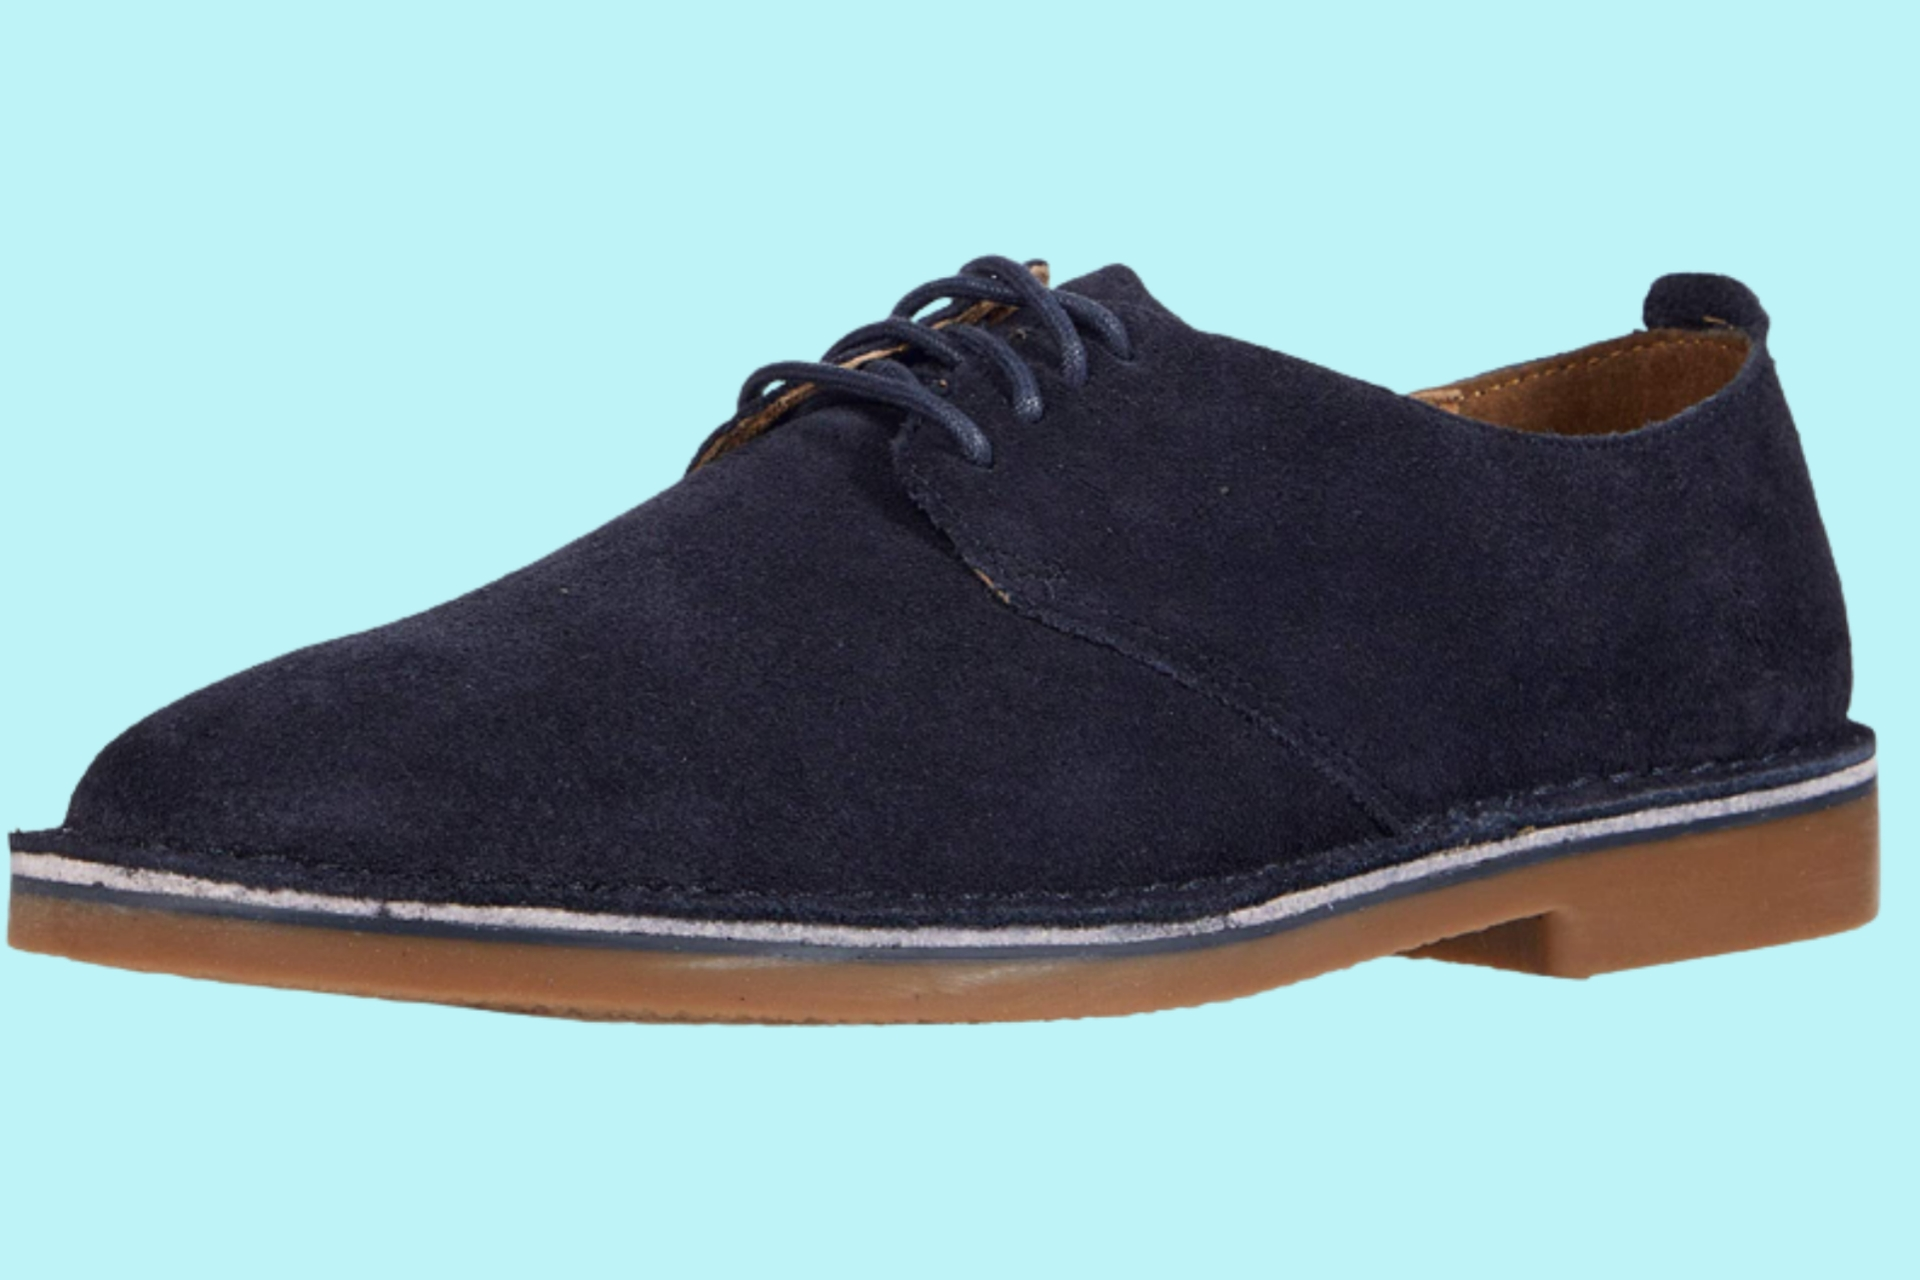 Top Florsheim suede shoes